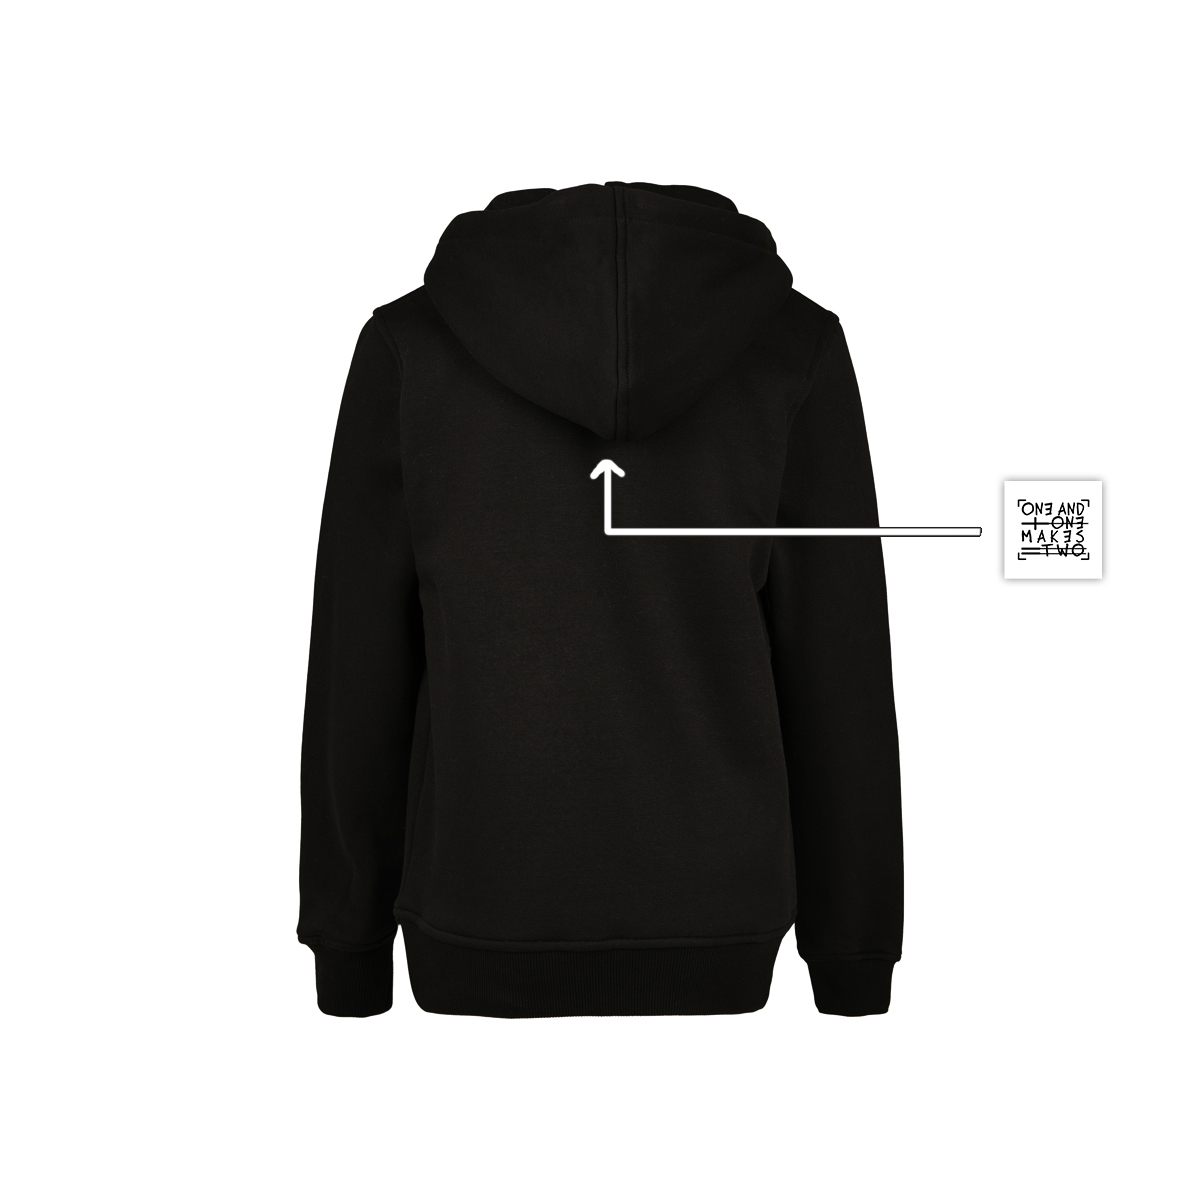 ONE AND ONE MAKES TWO - kids hoodie back - Caring Community